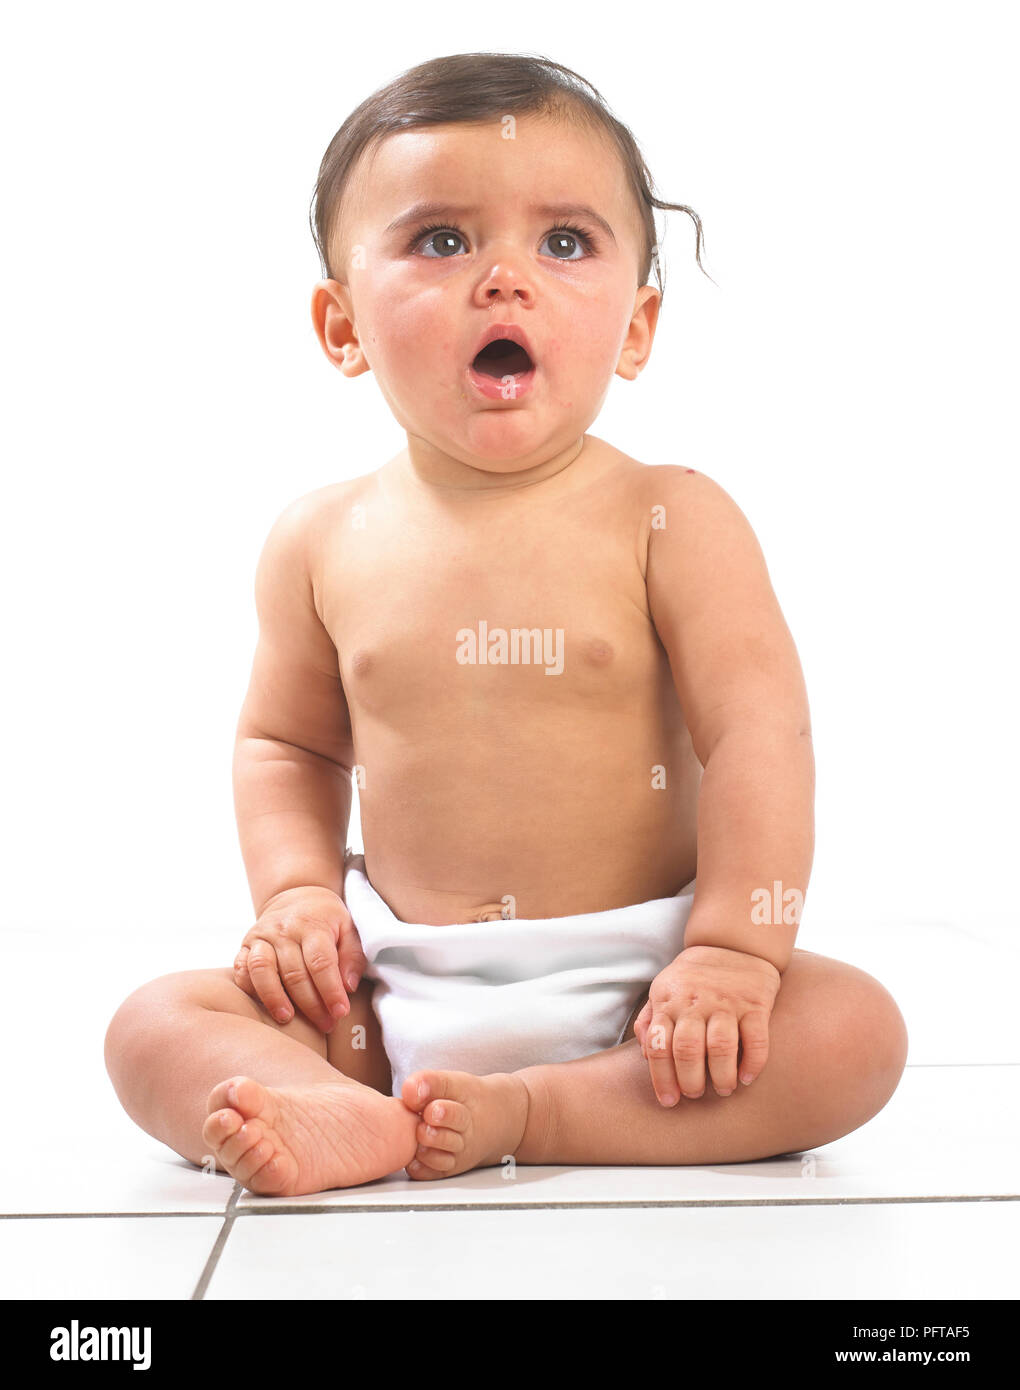 Baby girl sitting wearing nappy, 7 months - Stock Image